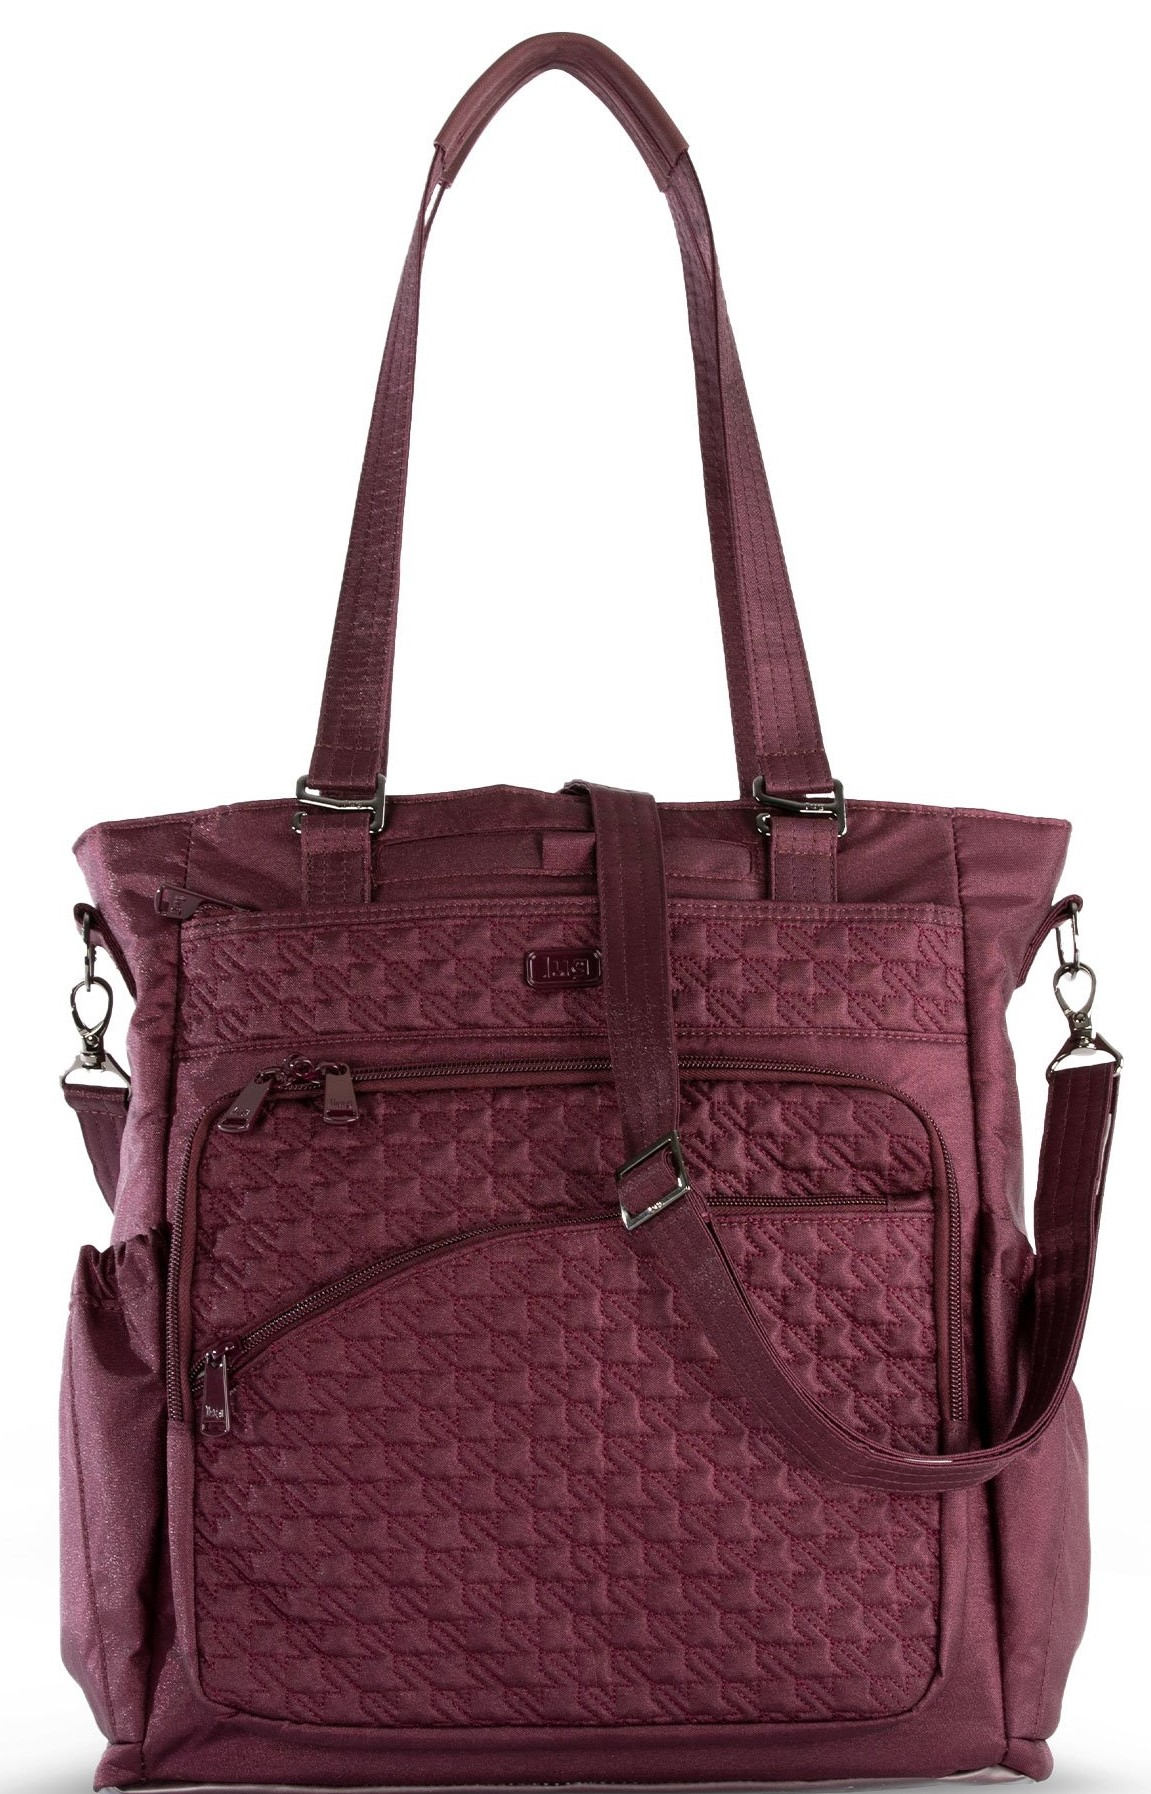 LUG - Ace 2 - North/South Crossbody Tote - Shimmer Wine